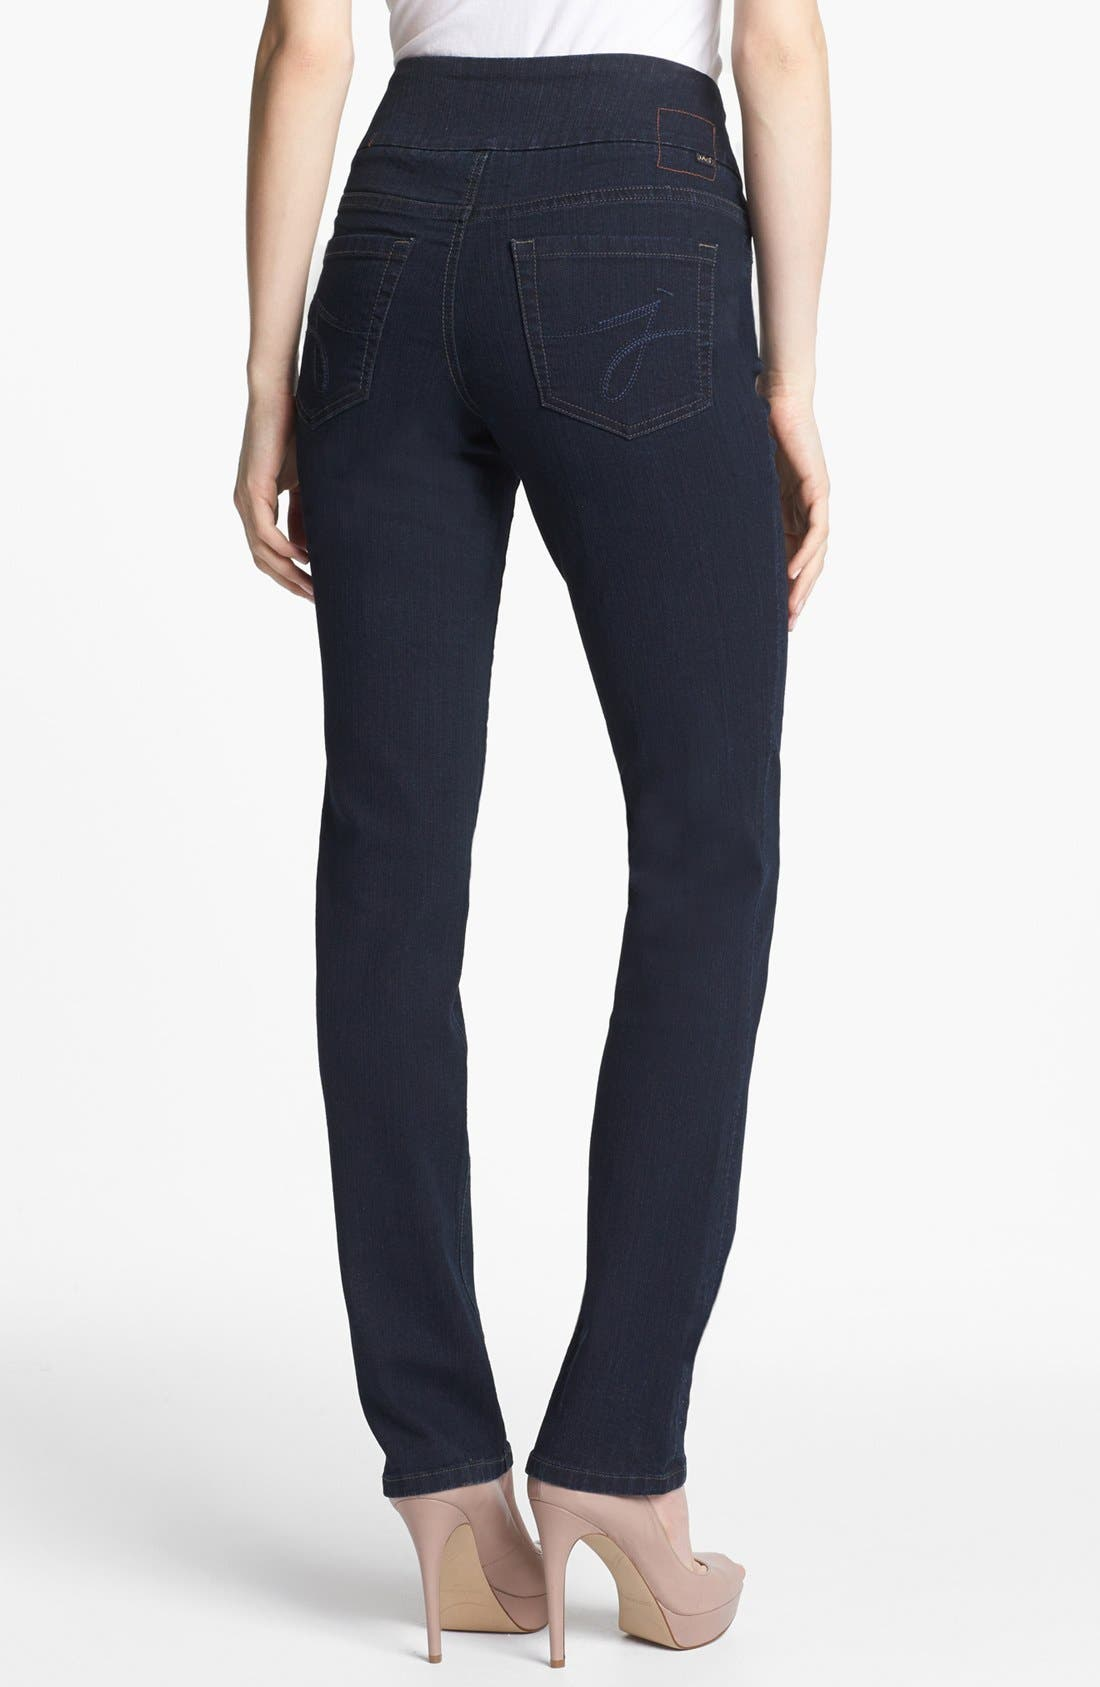 'Peri' Pull-On Straight Leg Jeans,                             Alternate thumbnail 2, color,                             402